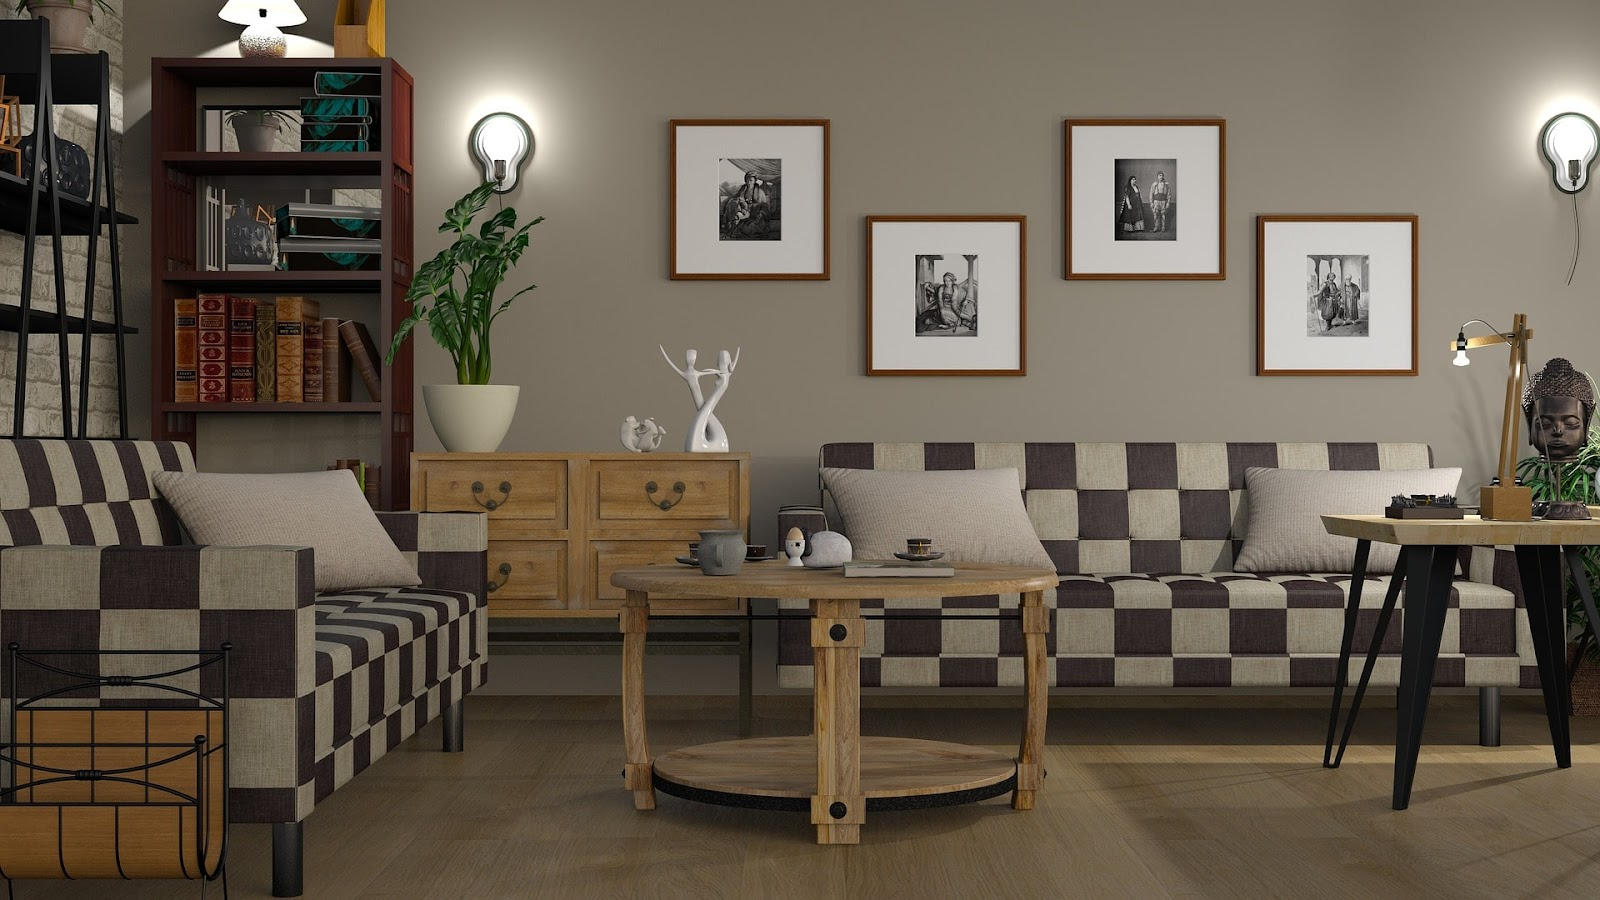 A compact living space with simple wall decor representing a perfect space for you to relax in.